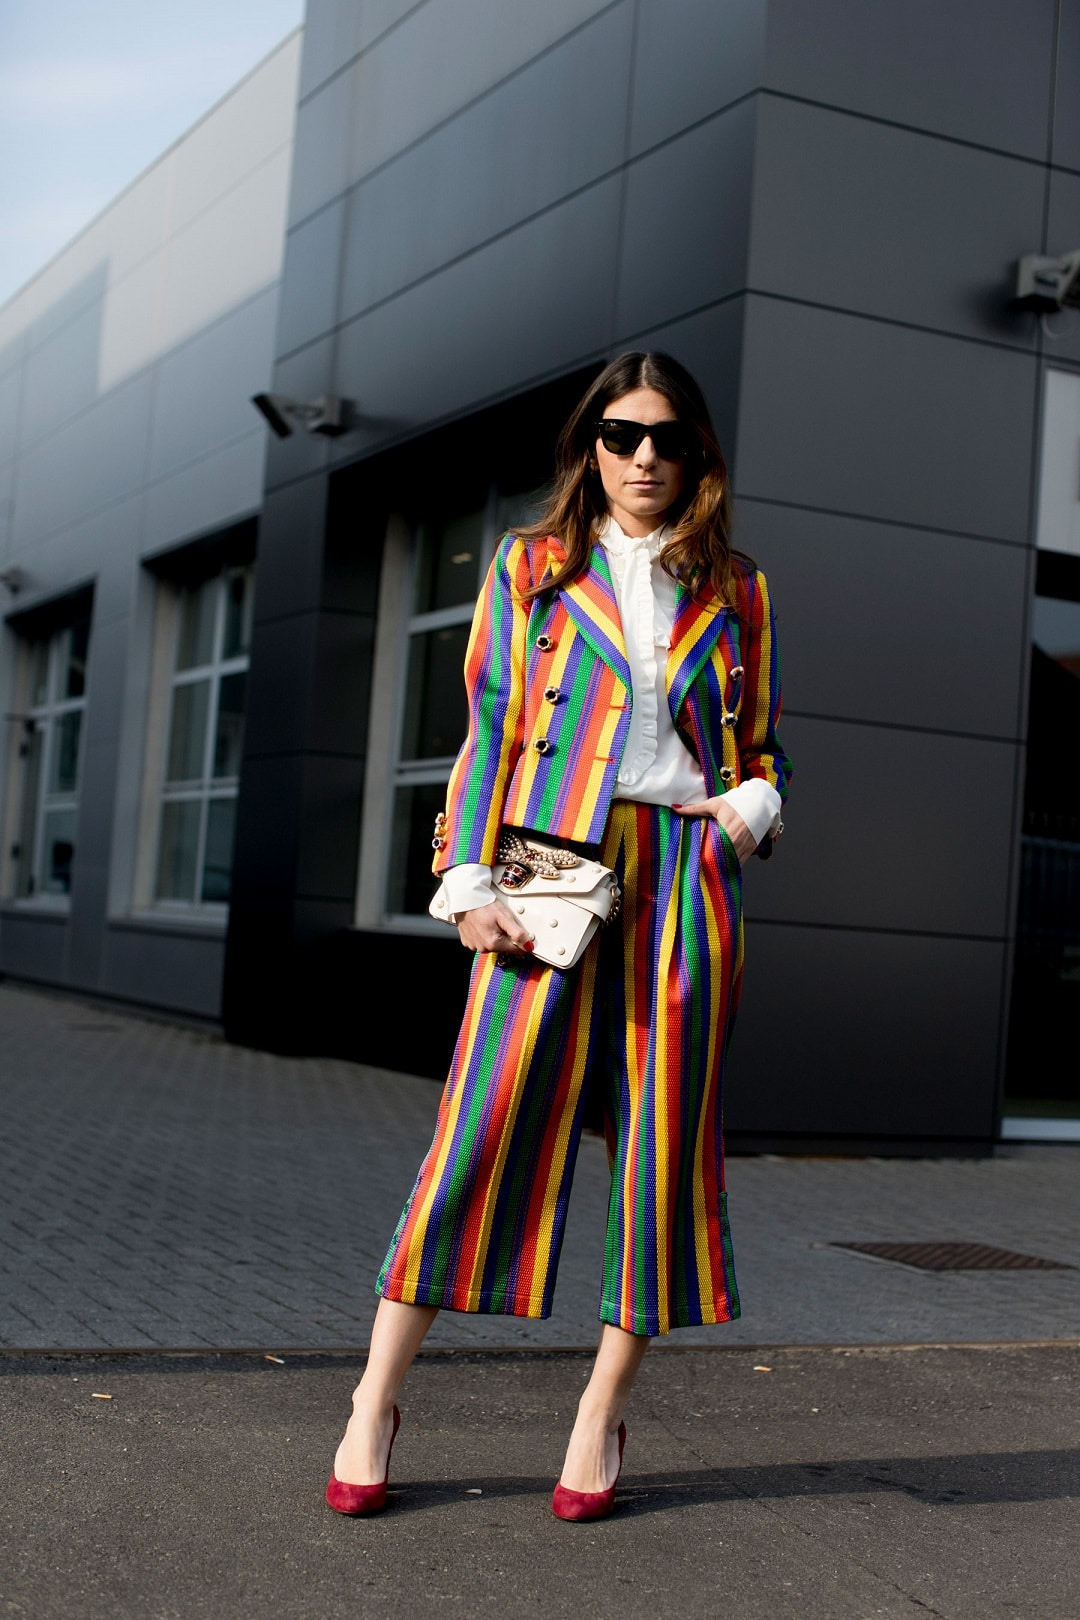 Tendência Rainbow Stripes, Rainbow Stripes look, listras coloridas, tendência listras coloridas, listras coloridas tendência, looks com listras coloridas, tricot listras coloridas, look Rainbow Stripes, outfit Rainbow Stripes, Rainbow Stripes outfit